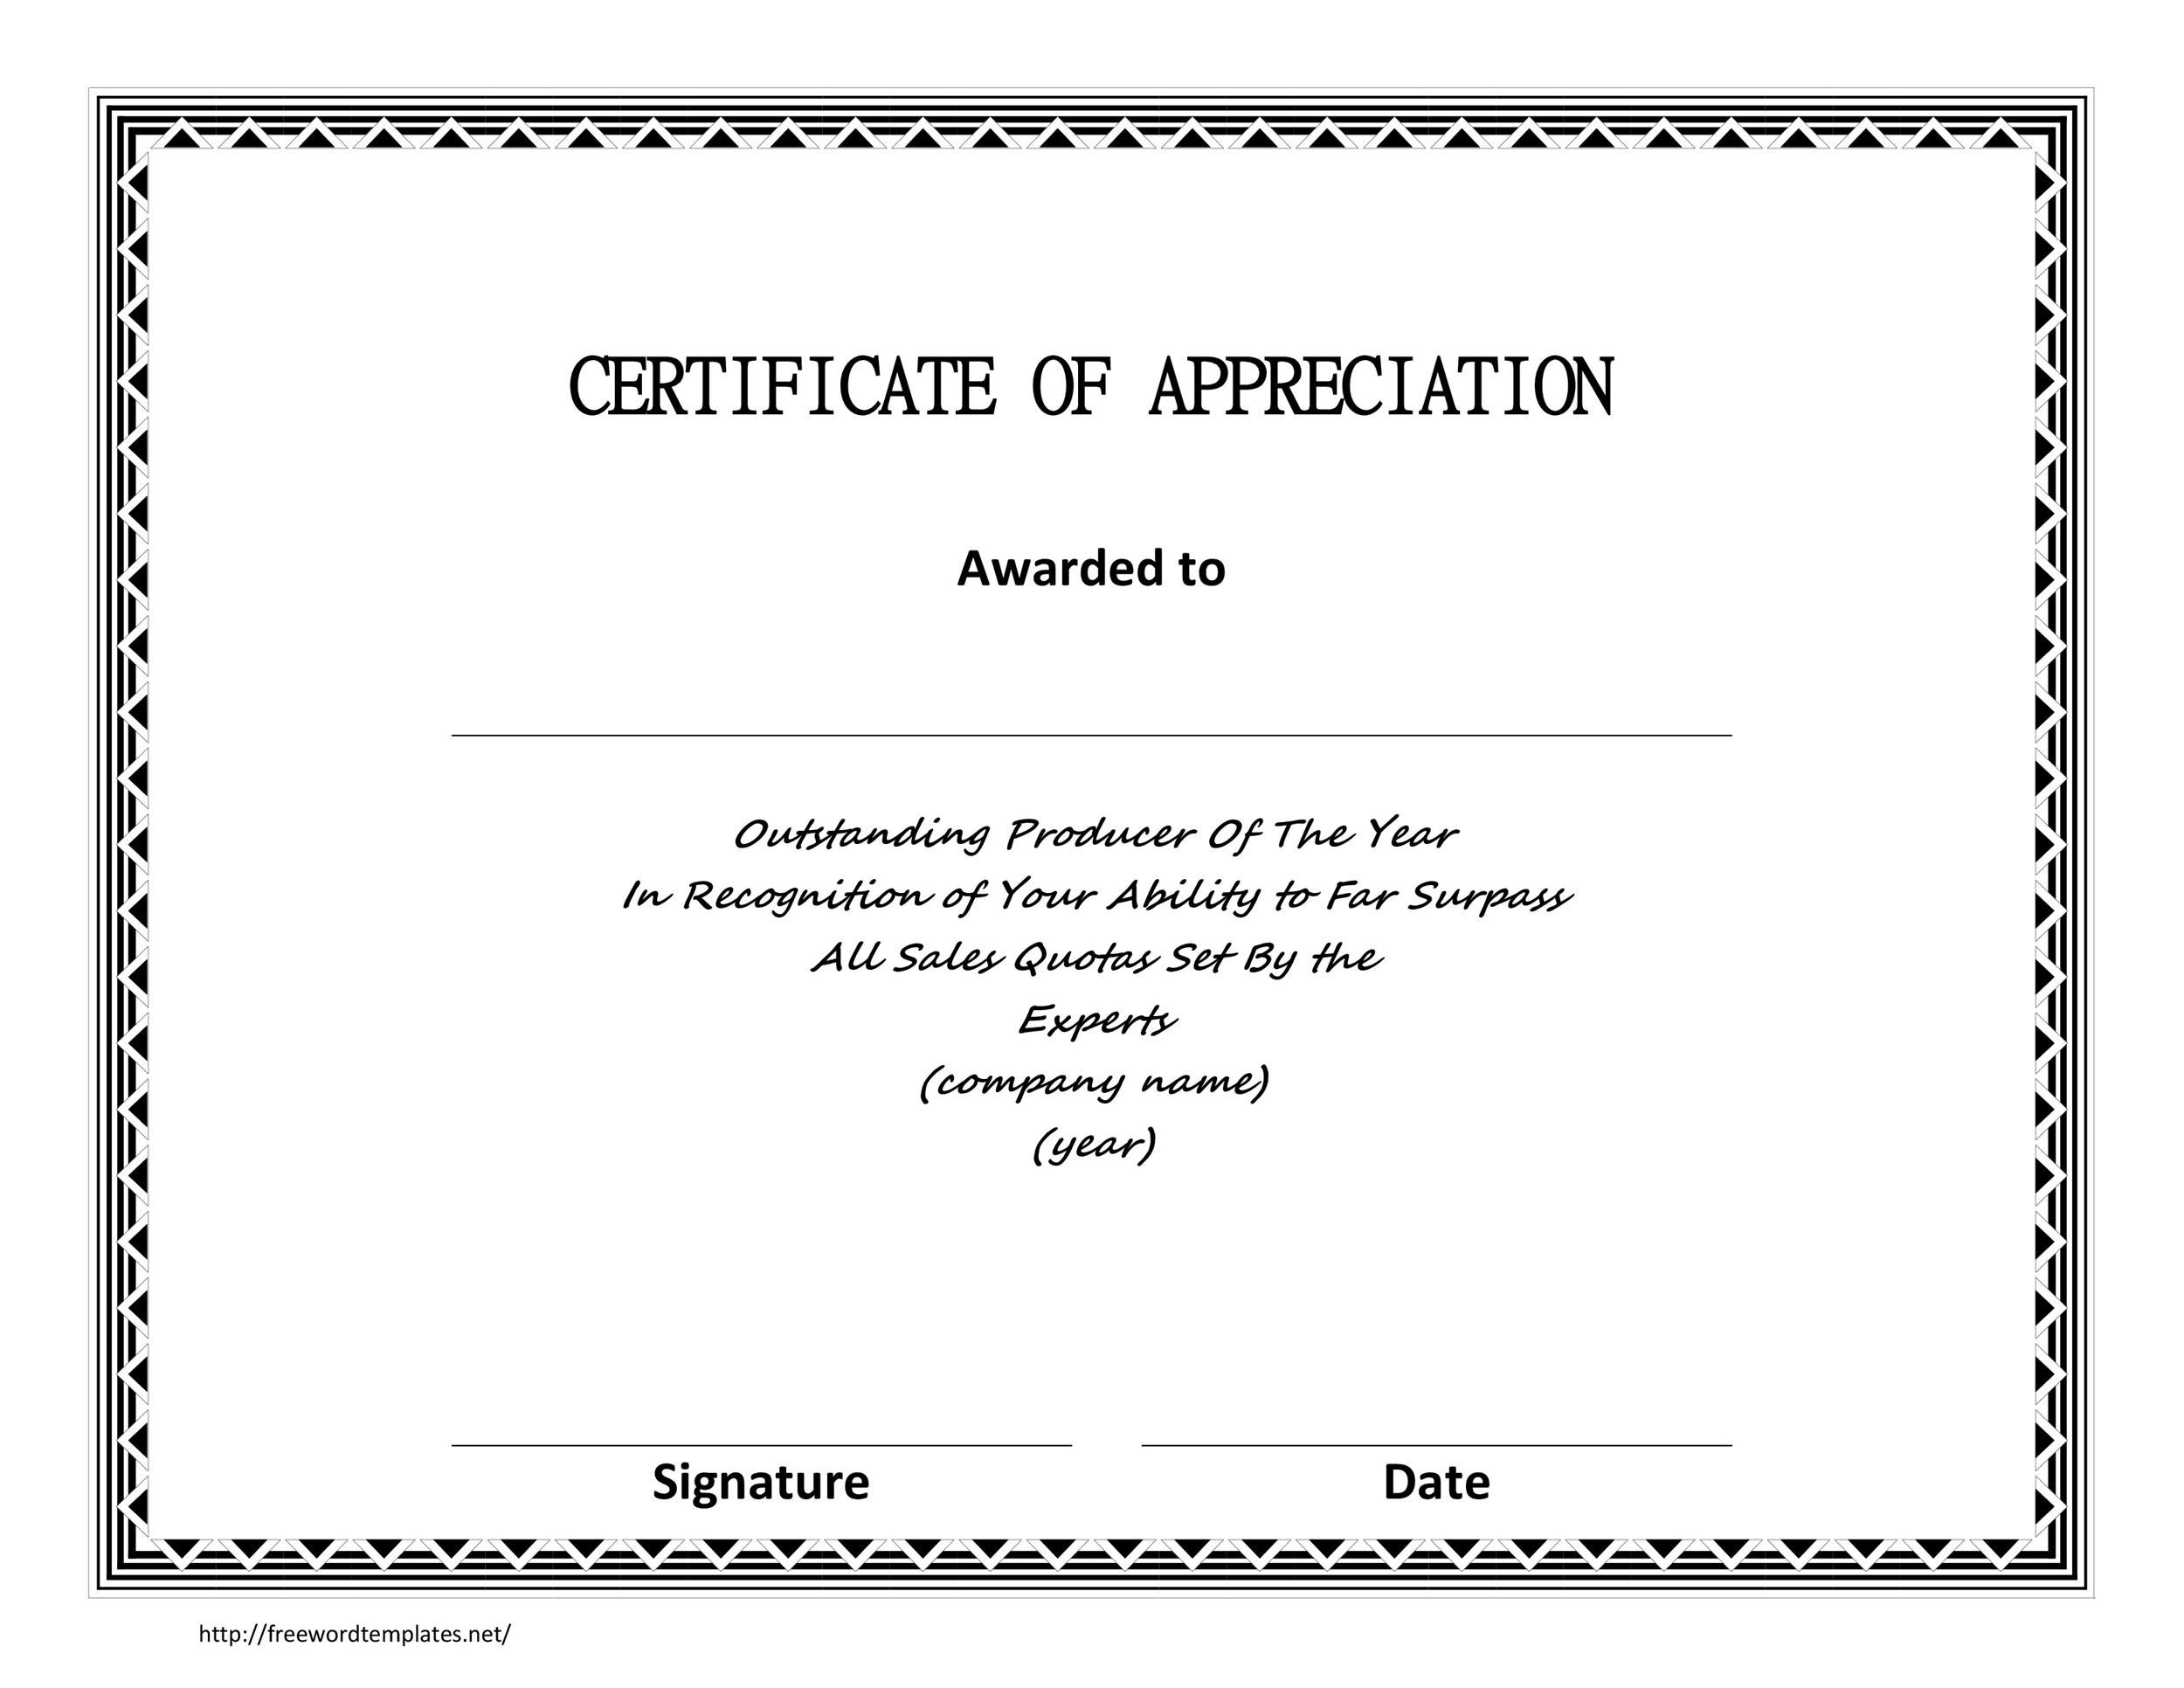 recognition certificate templates for word certificate of recognition templates oyle kalakaari co recognition certificate templates for word